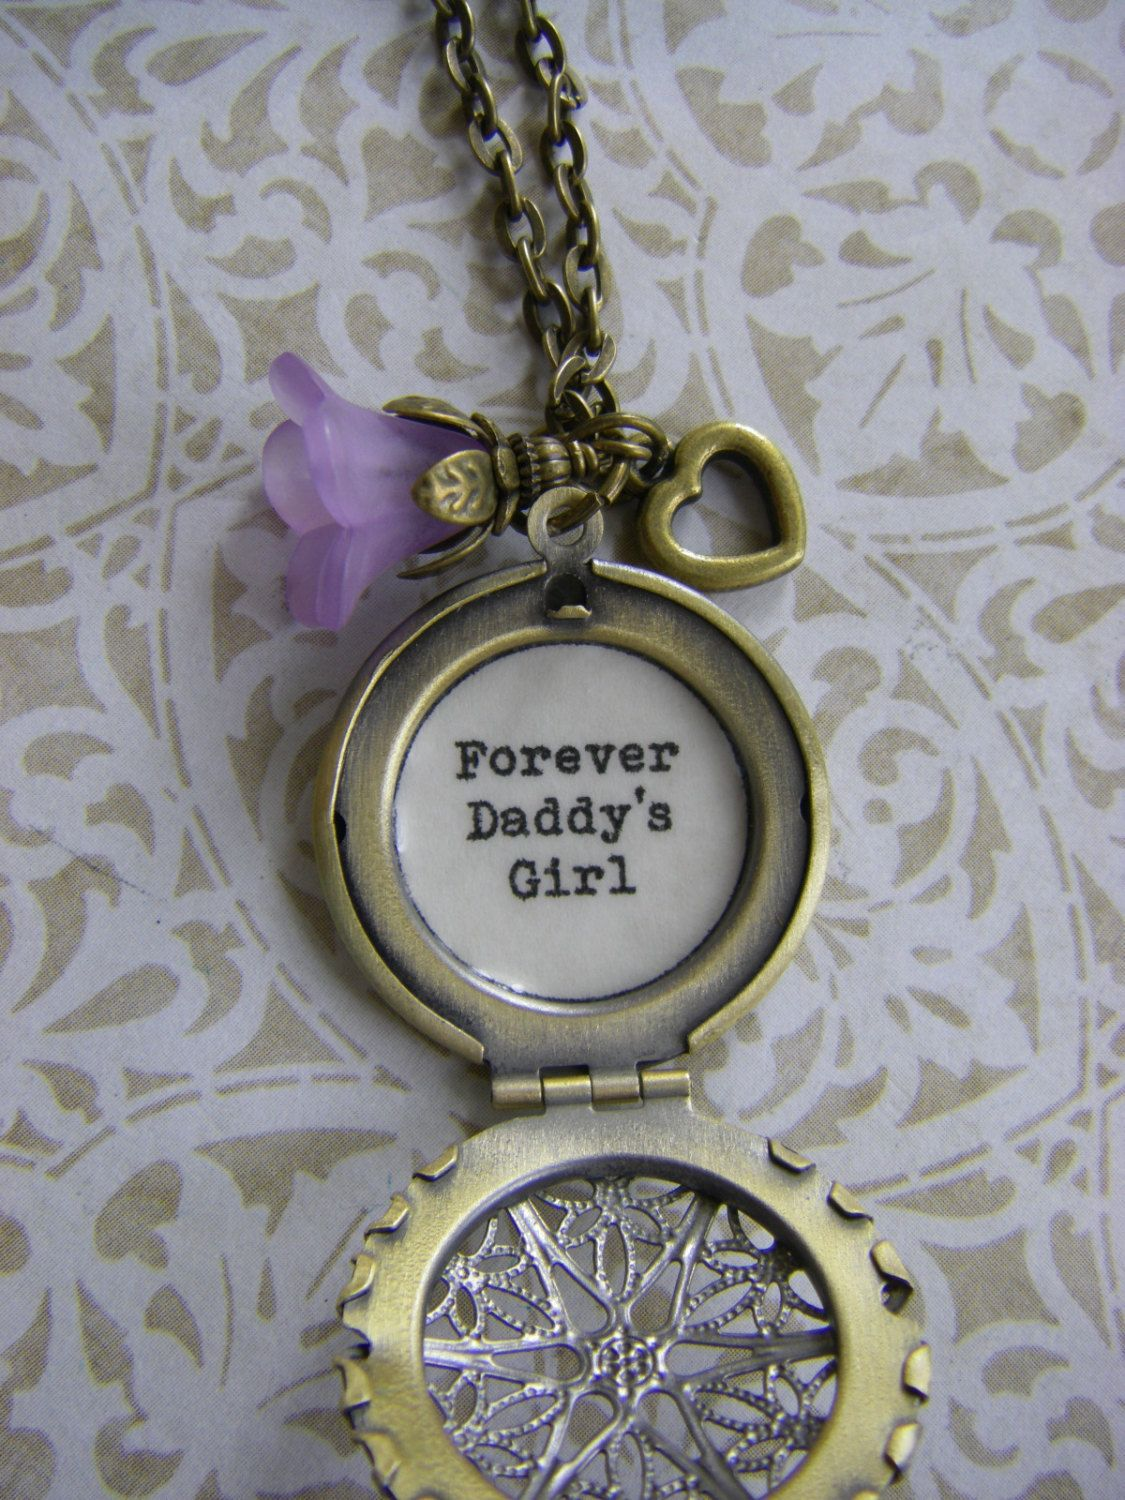 Gifts For Dad From Daughter Part - 32: Forever Daddyu0027s Girl Locket Necklace Father Daughter Gift Father Bride Dad  Daughter Dance Purple Flower Heart